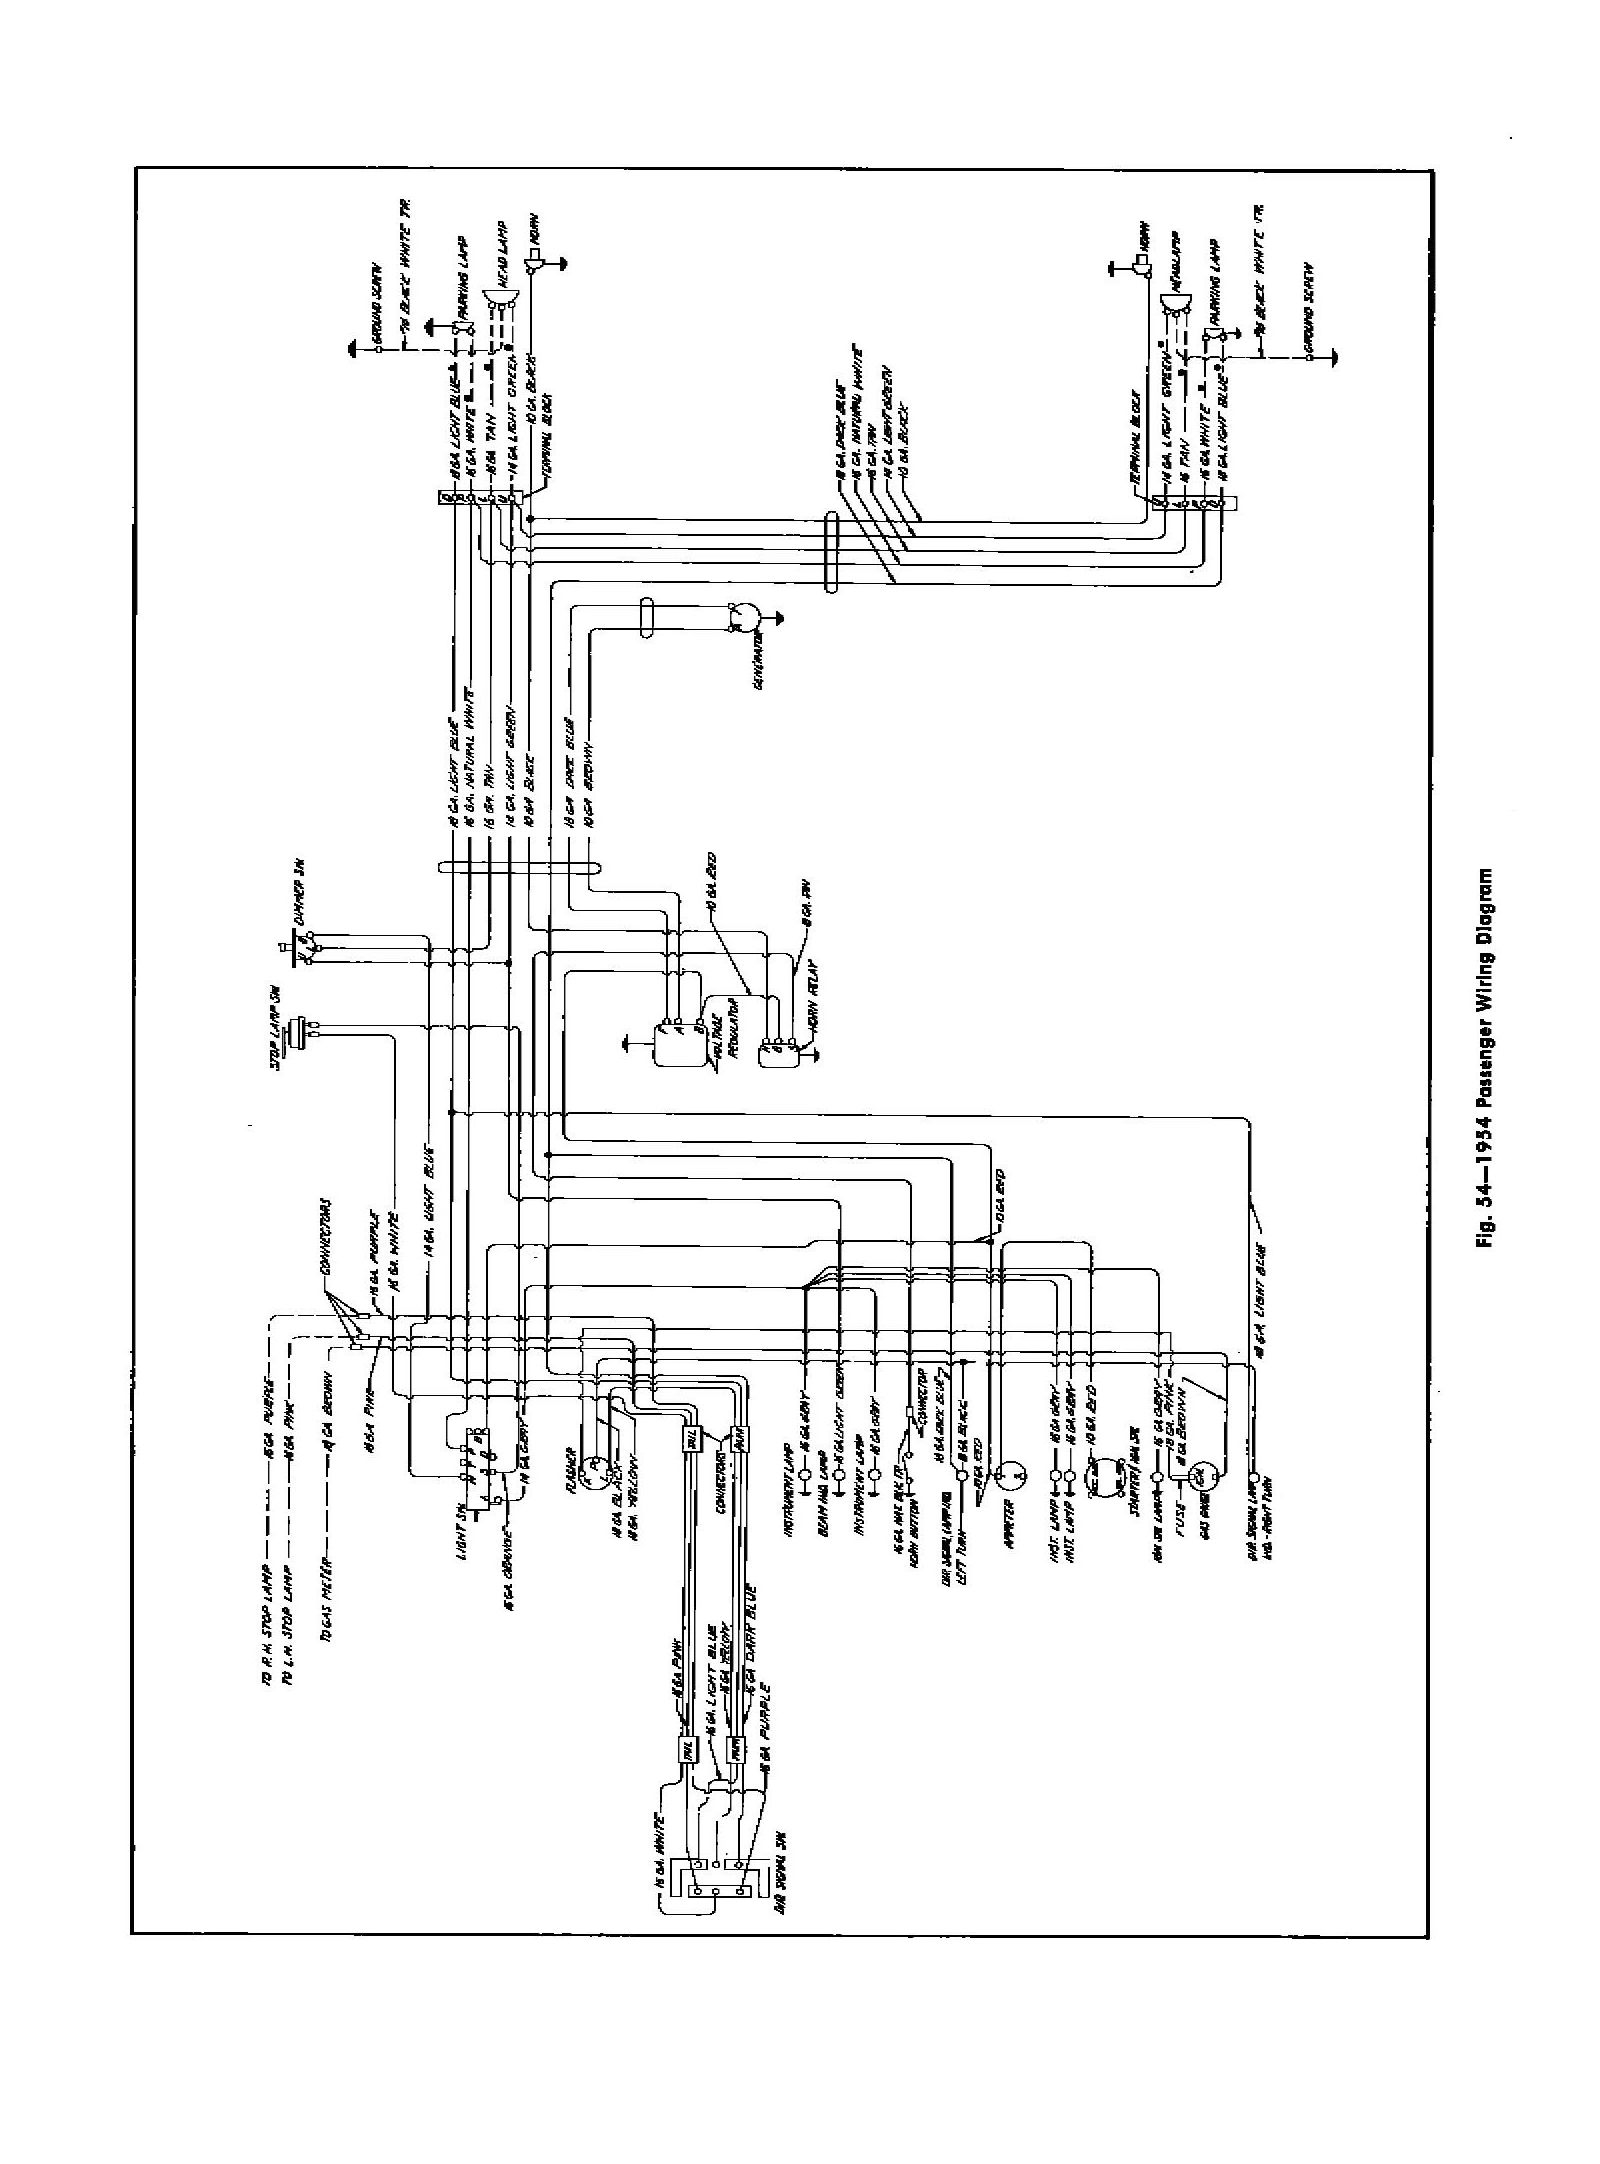 hight resolution of chevy wiring truck harnessfor1953 wiring diagram for you 1954 chevy ignition switch wiring diagram 1953 chevy